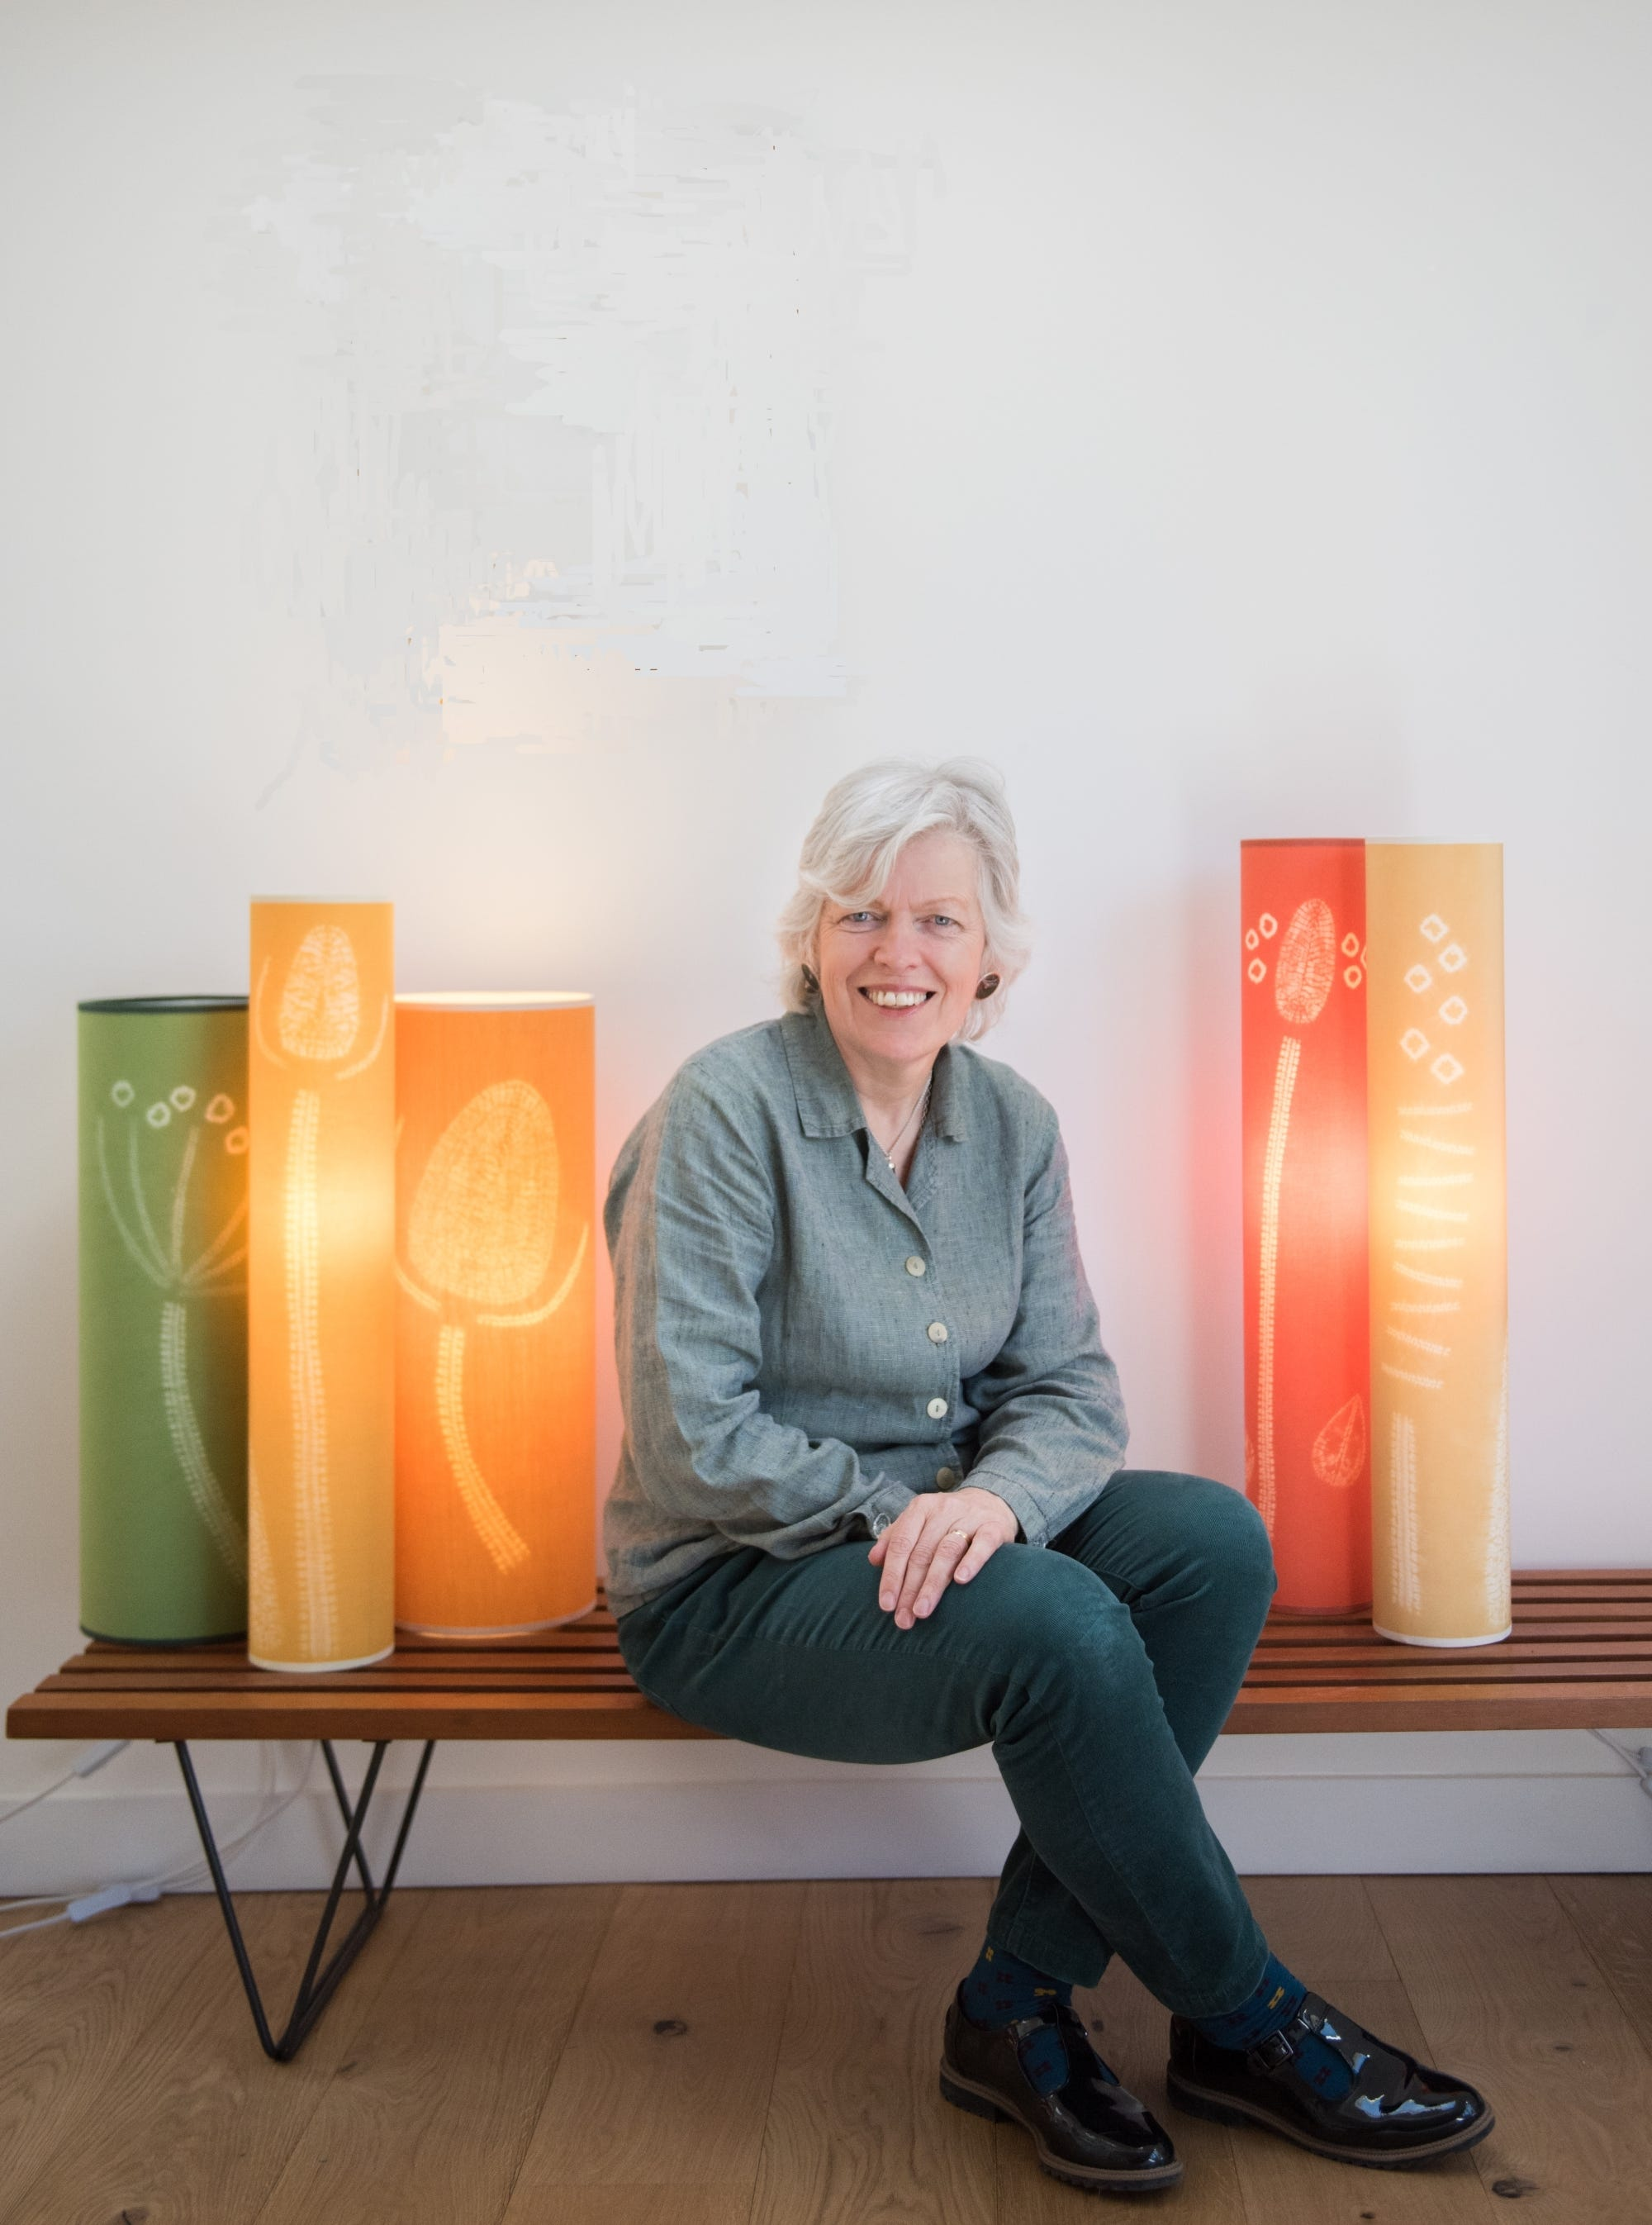 Annabel Wilson surrounded by her textile lamps